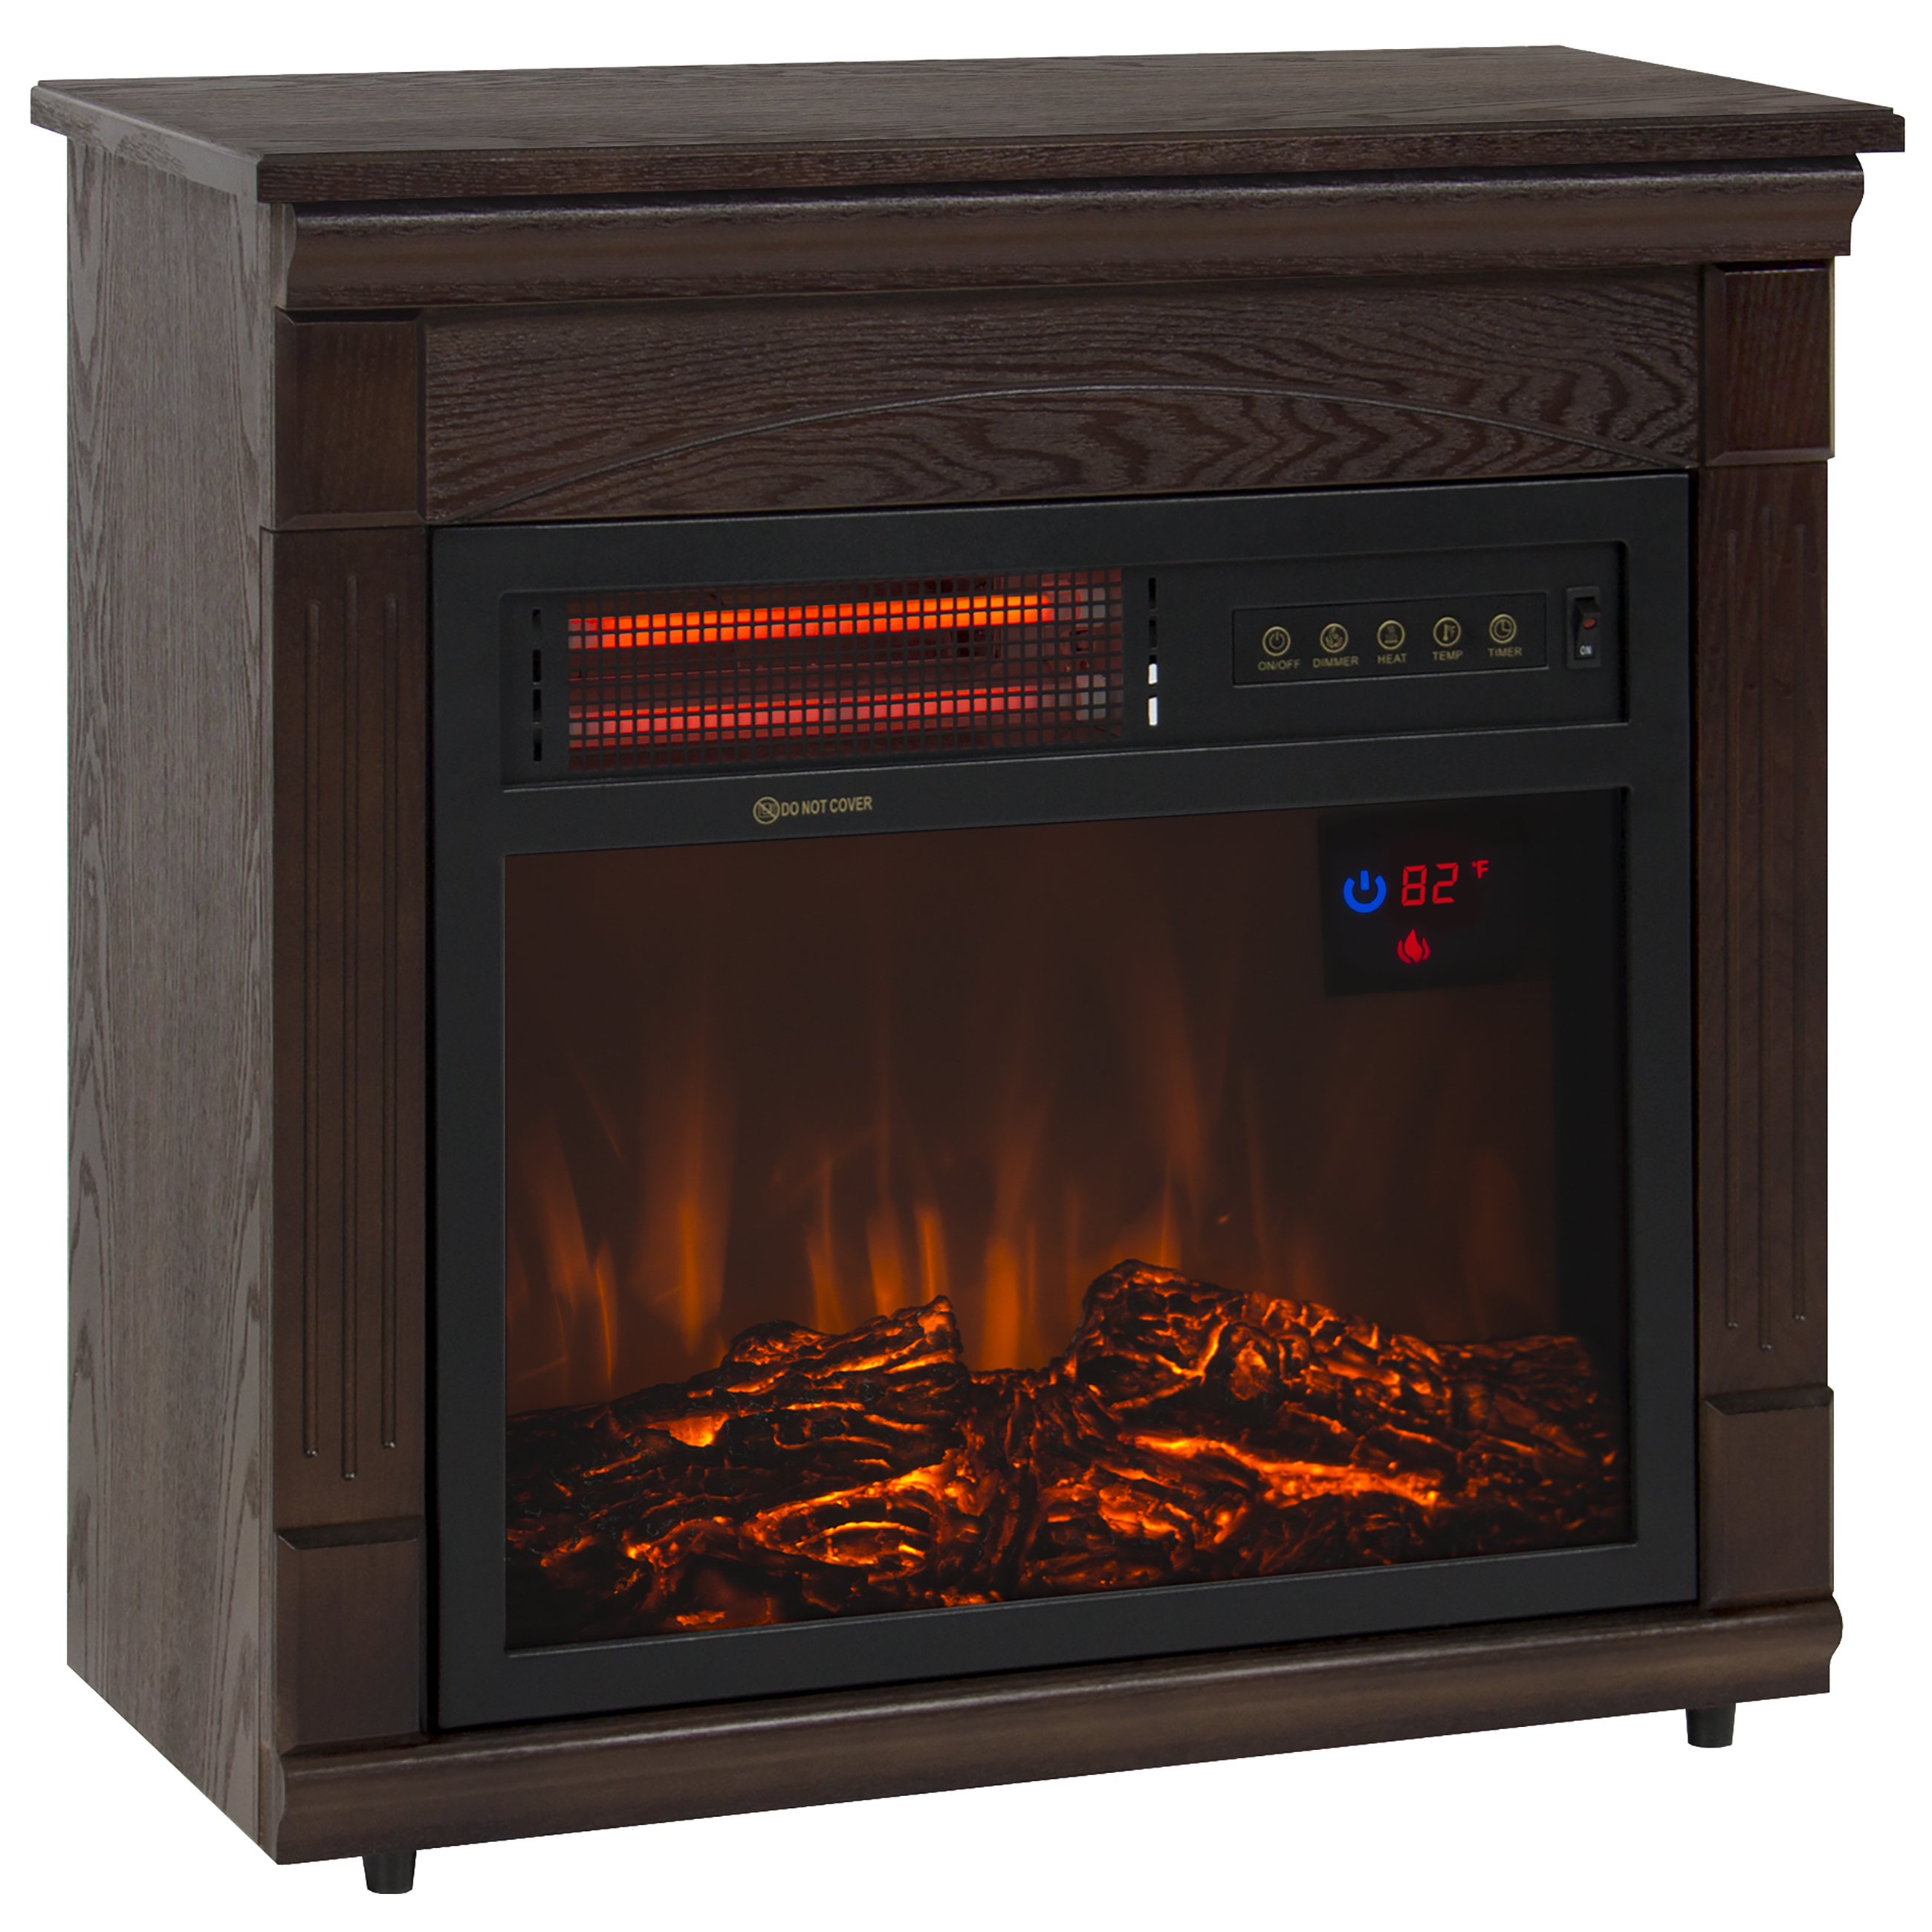 Best Choice Products Heat Adjustable 1500W Electric Fireplace Heater W/ Remote - Dark Walnut Finish